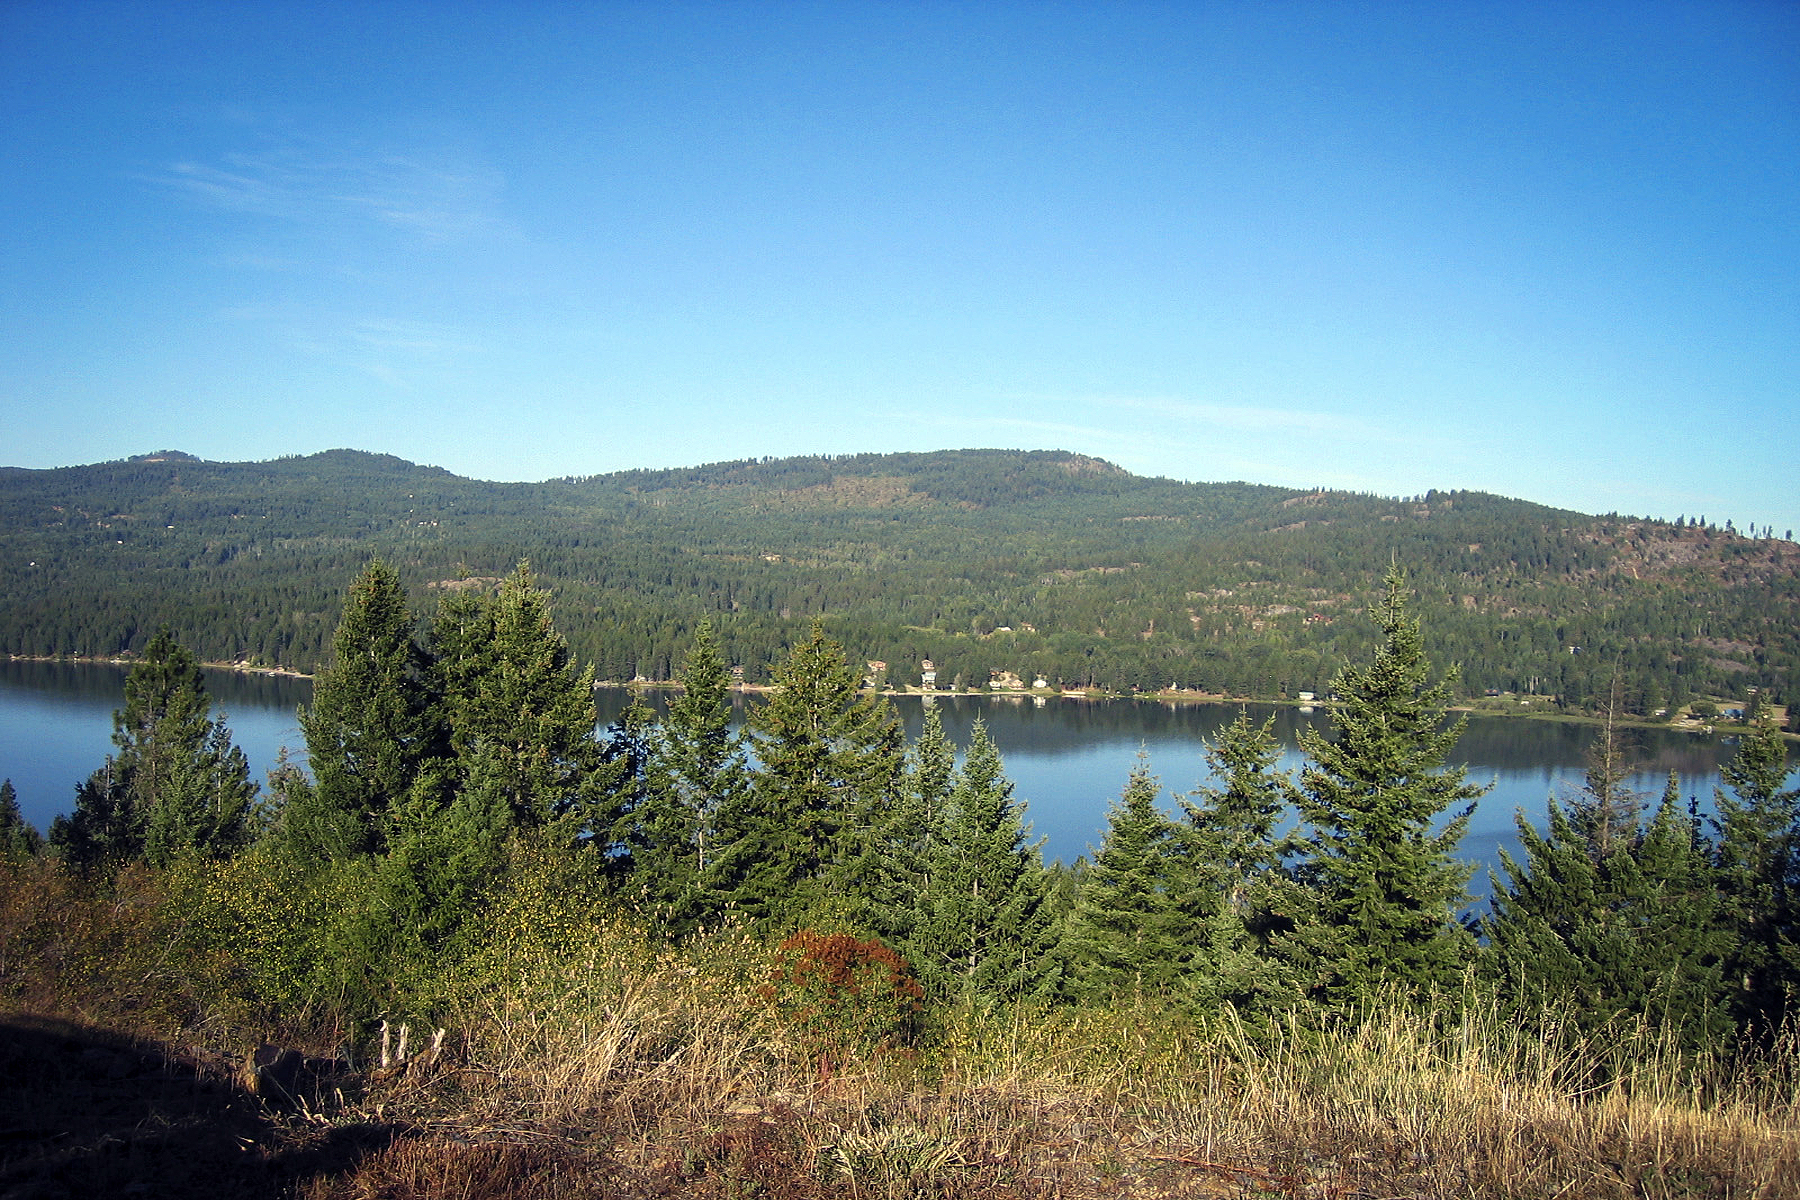 Terreno por un Venta en Uplake Ridge Lots Overlake View Lot 2 Cocolalla, Idaho, 83813 Estados Unidos